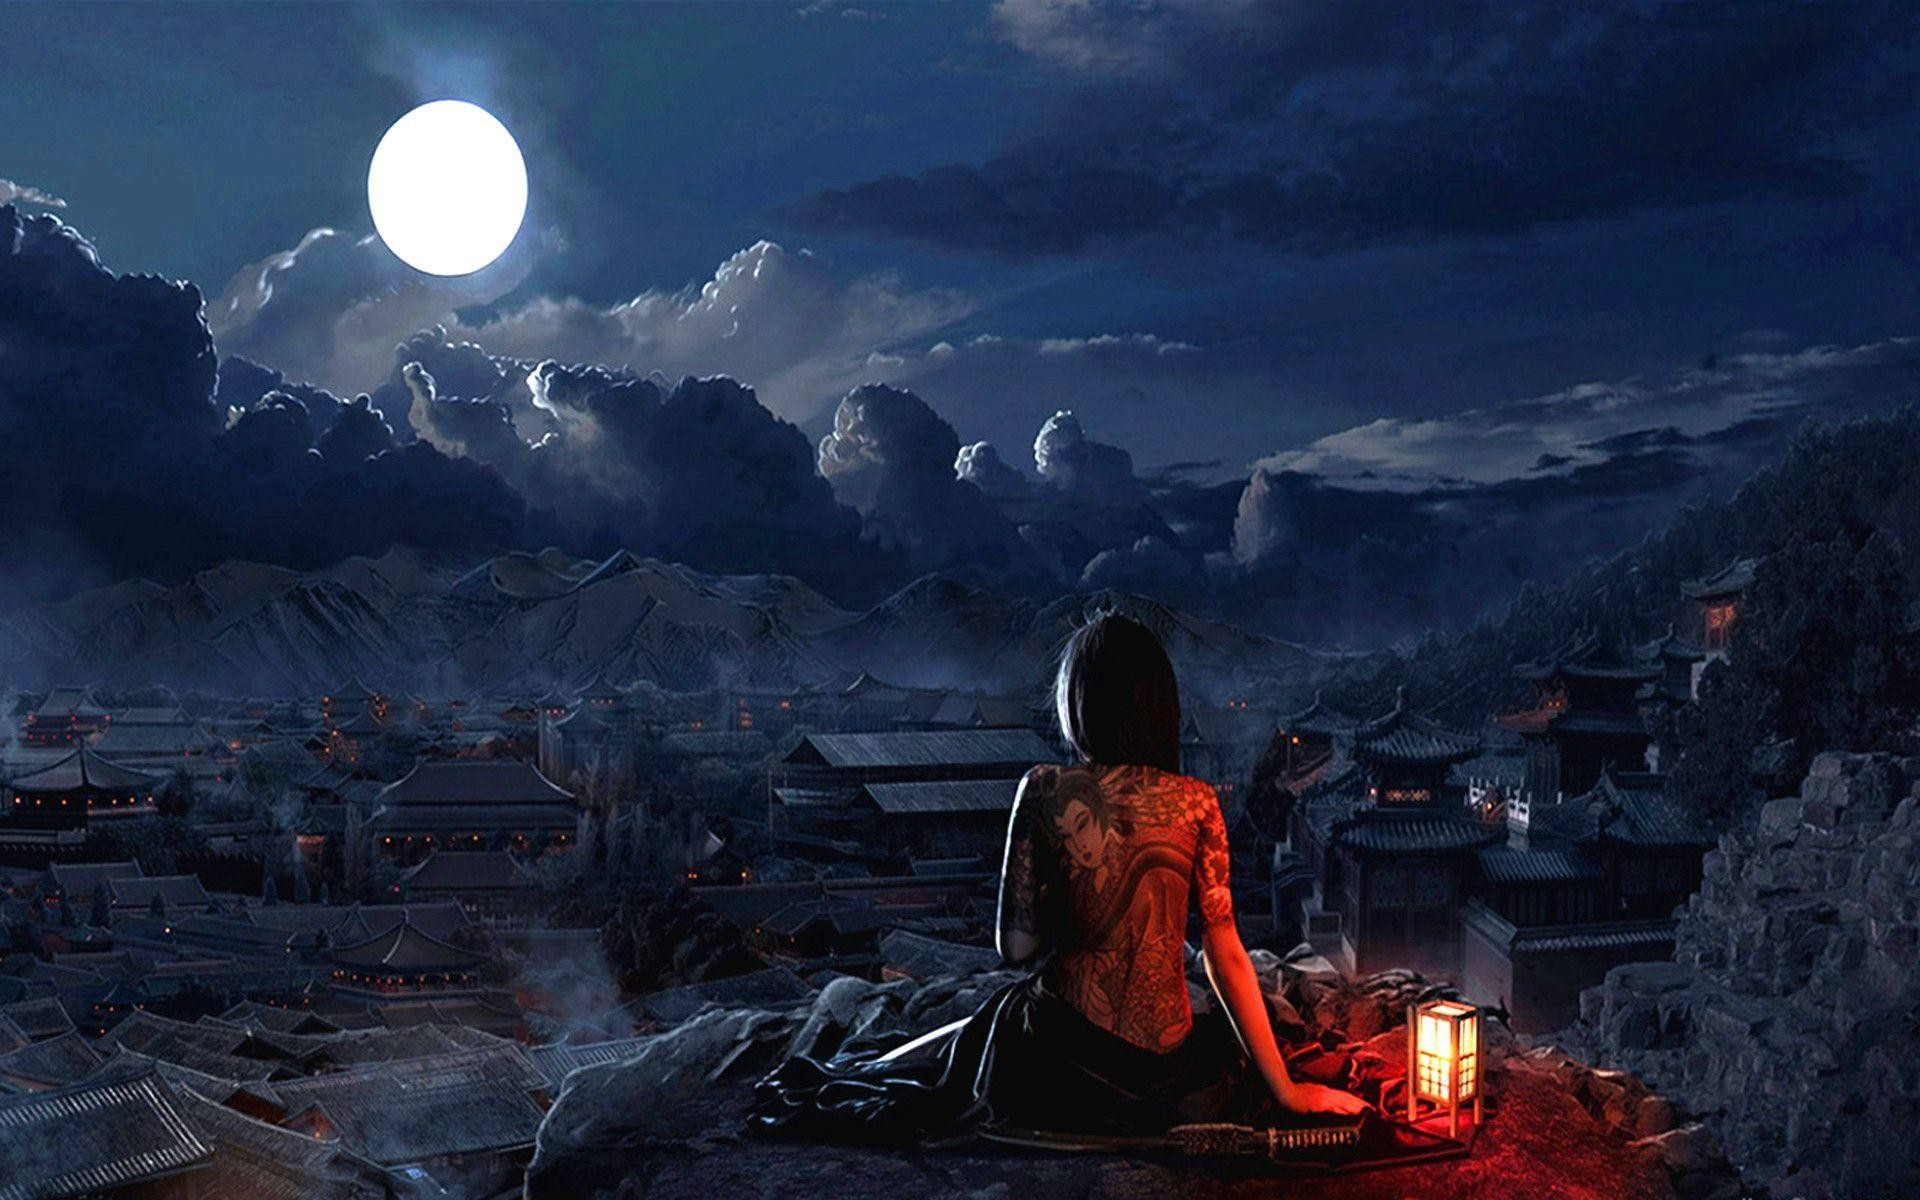 1920x1200 Girl With Tatto Full Moon Wallpaper #3828 Wallpaper | Wallshed.